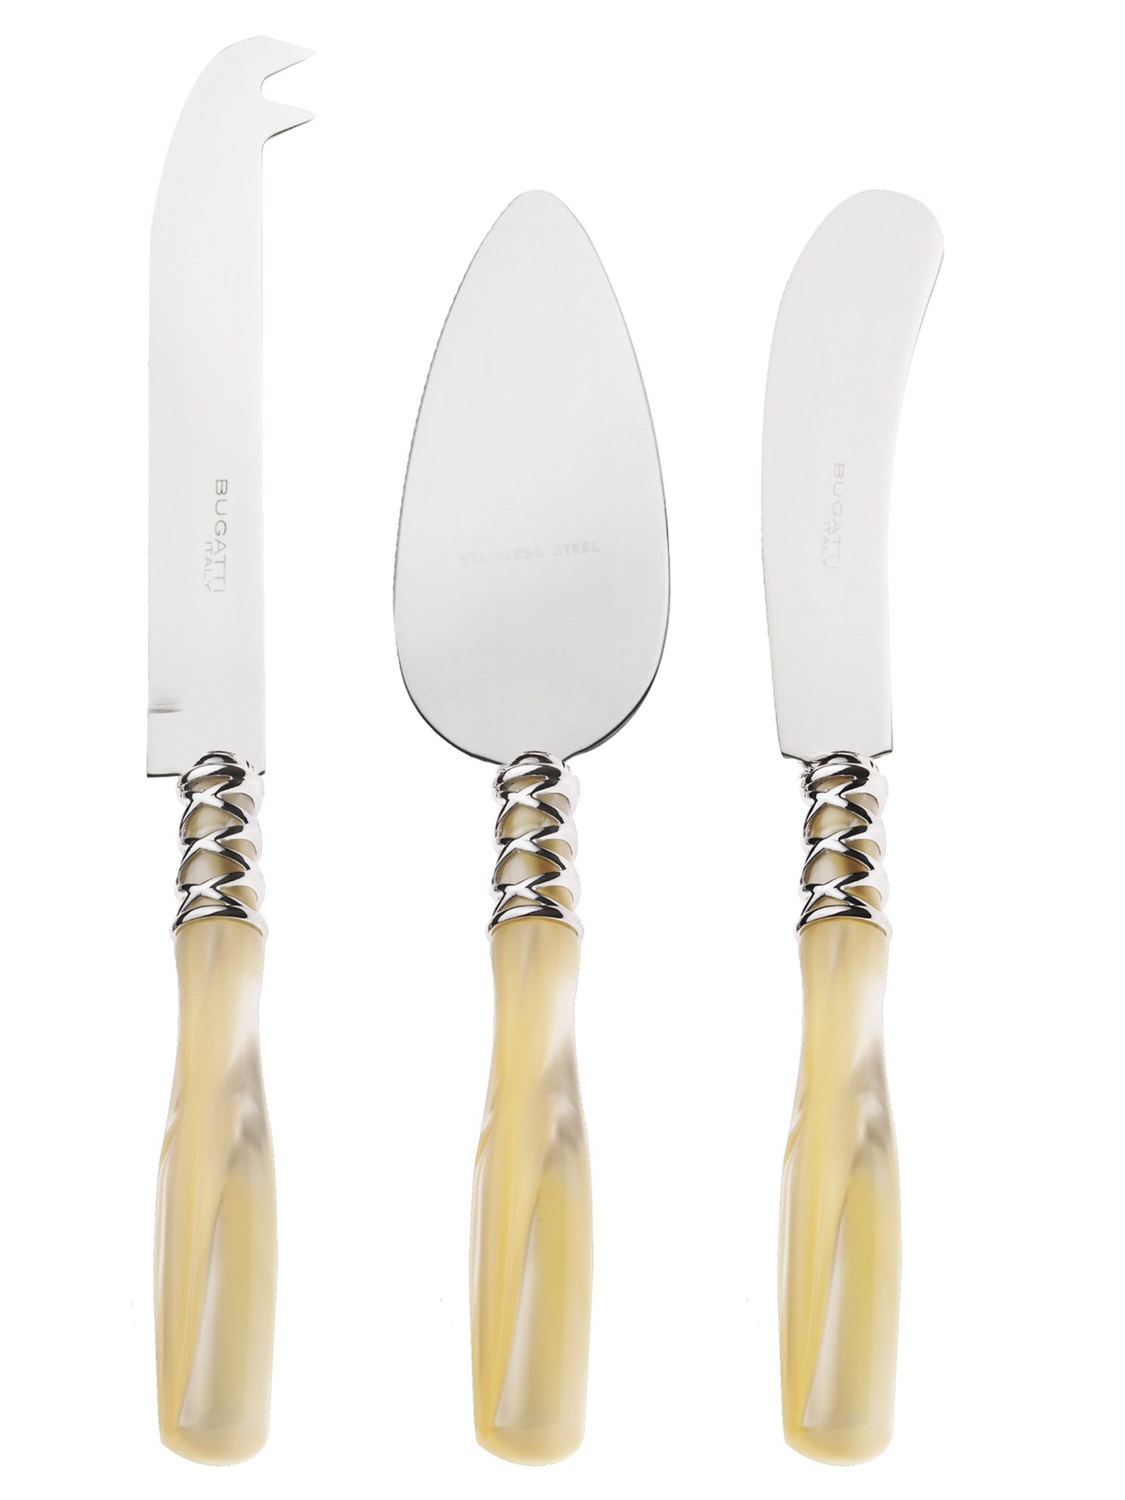 Arianna 3 Piece Cheese Knives Set ivory